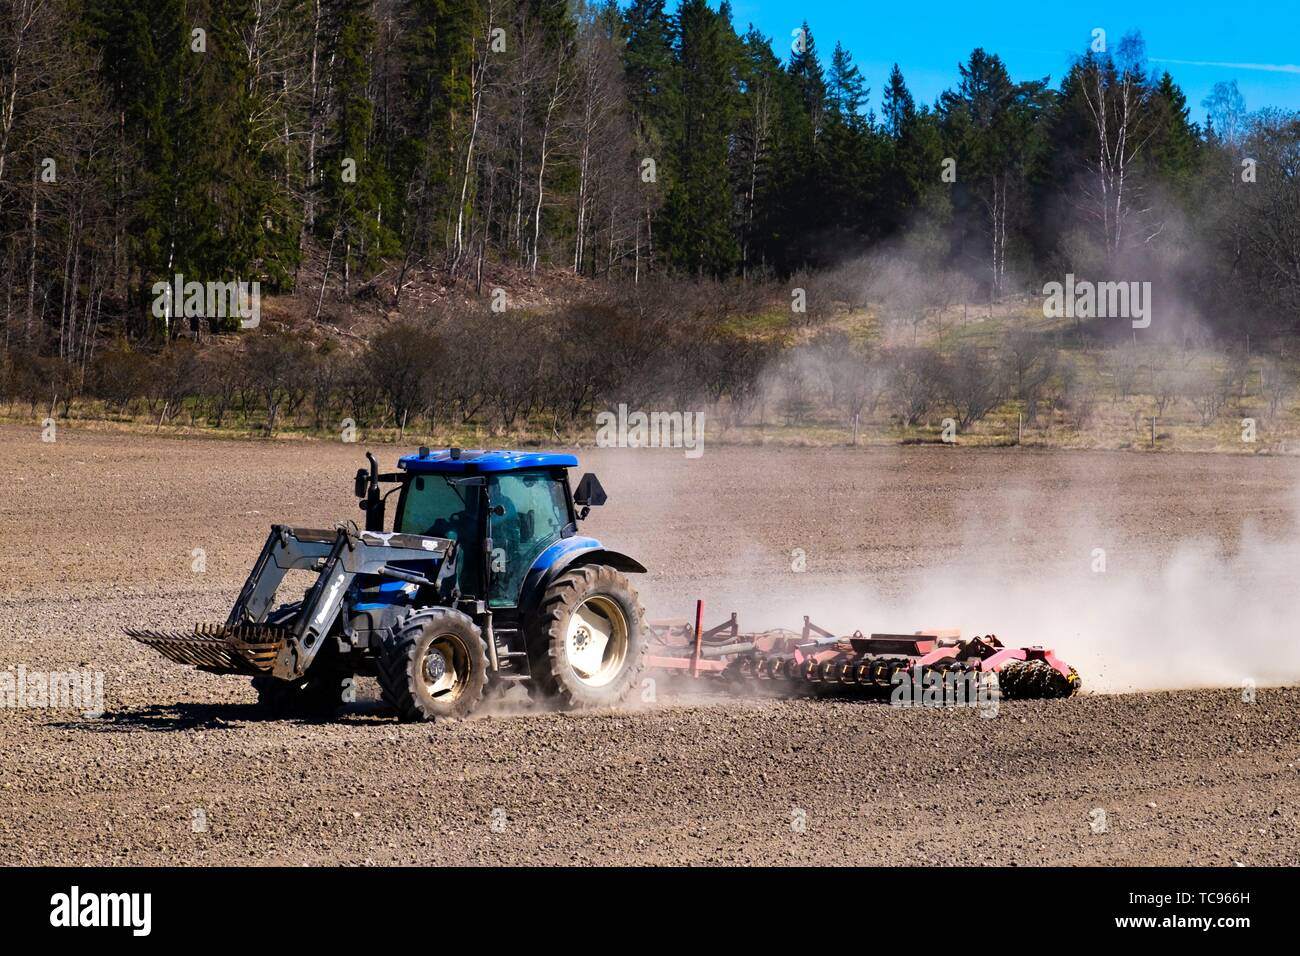 Tractor on field in Sweden. - Stock Image